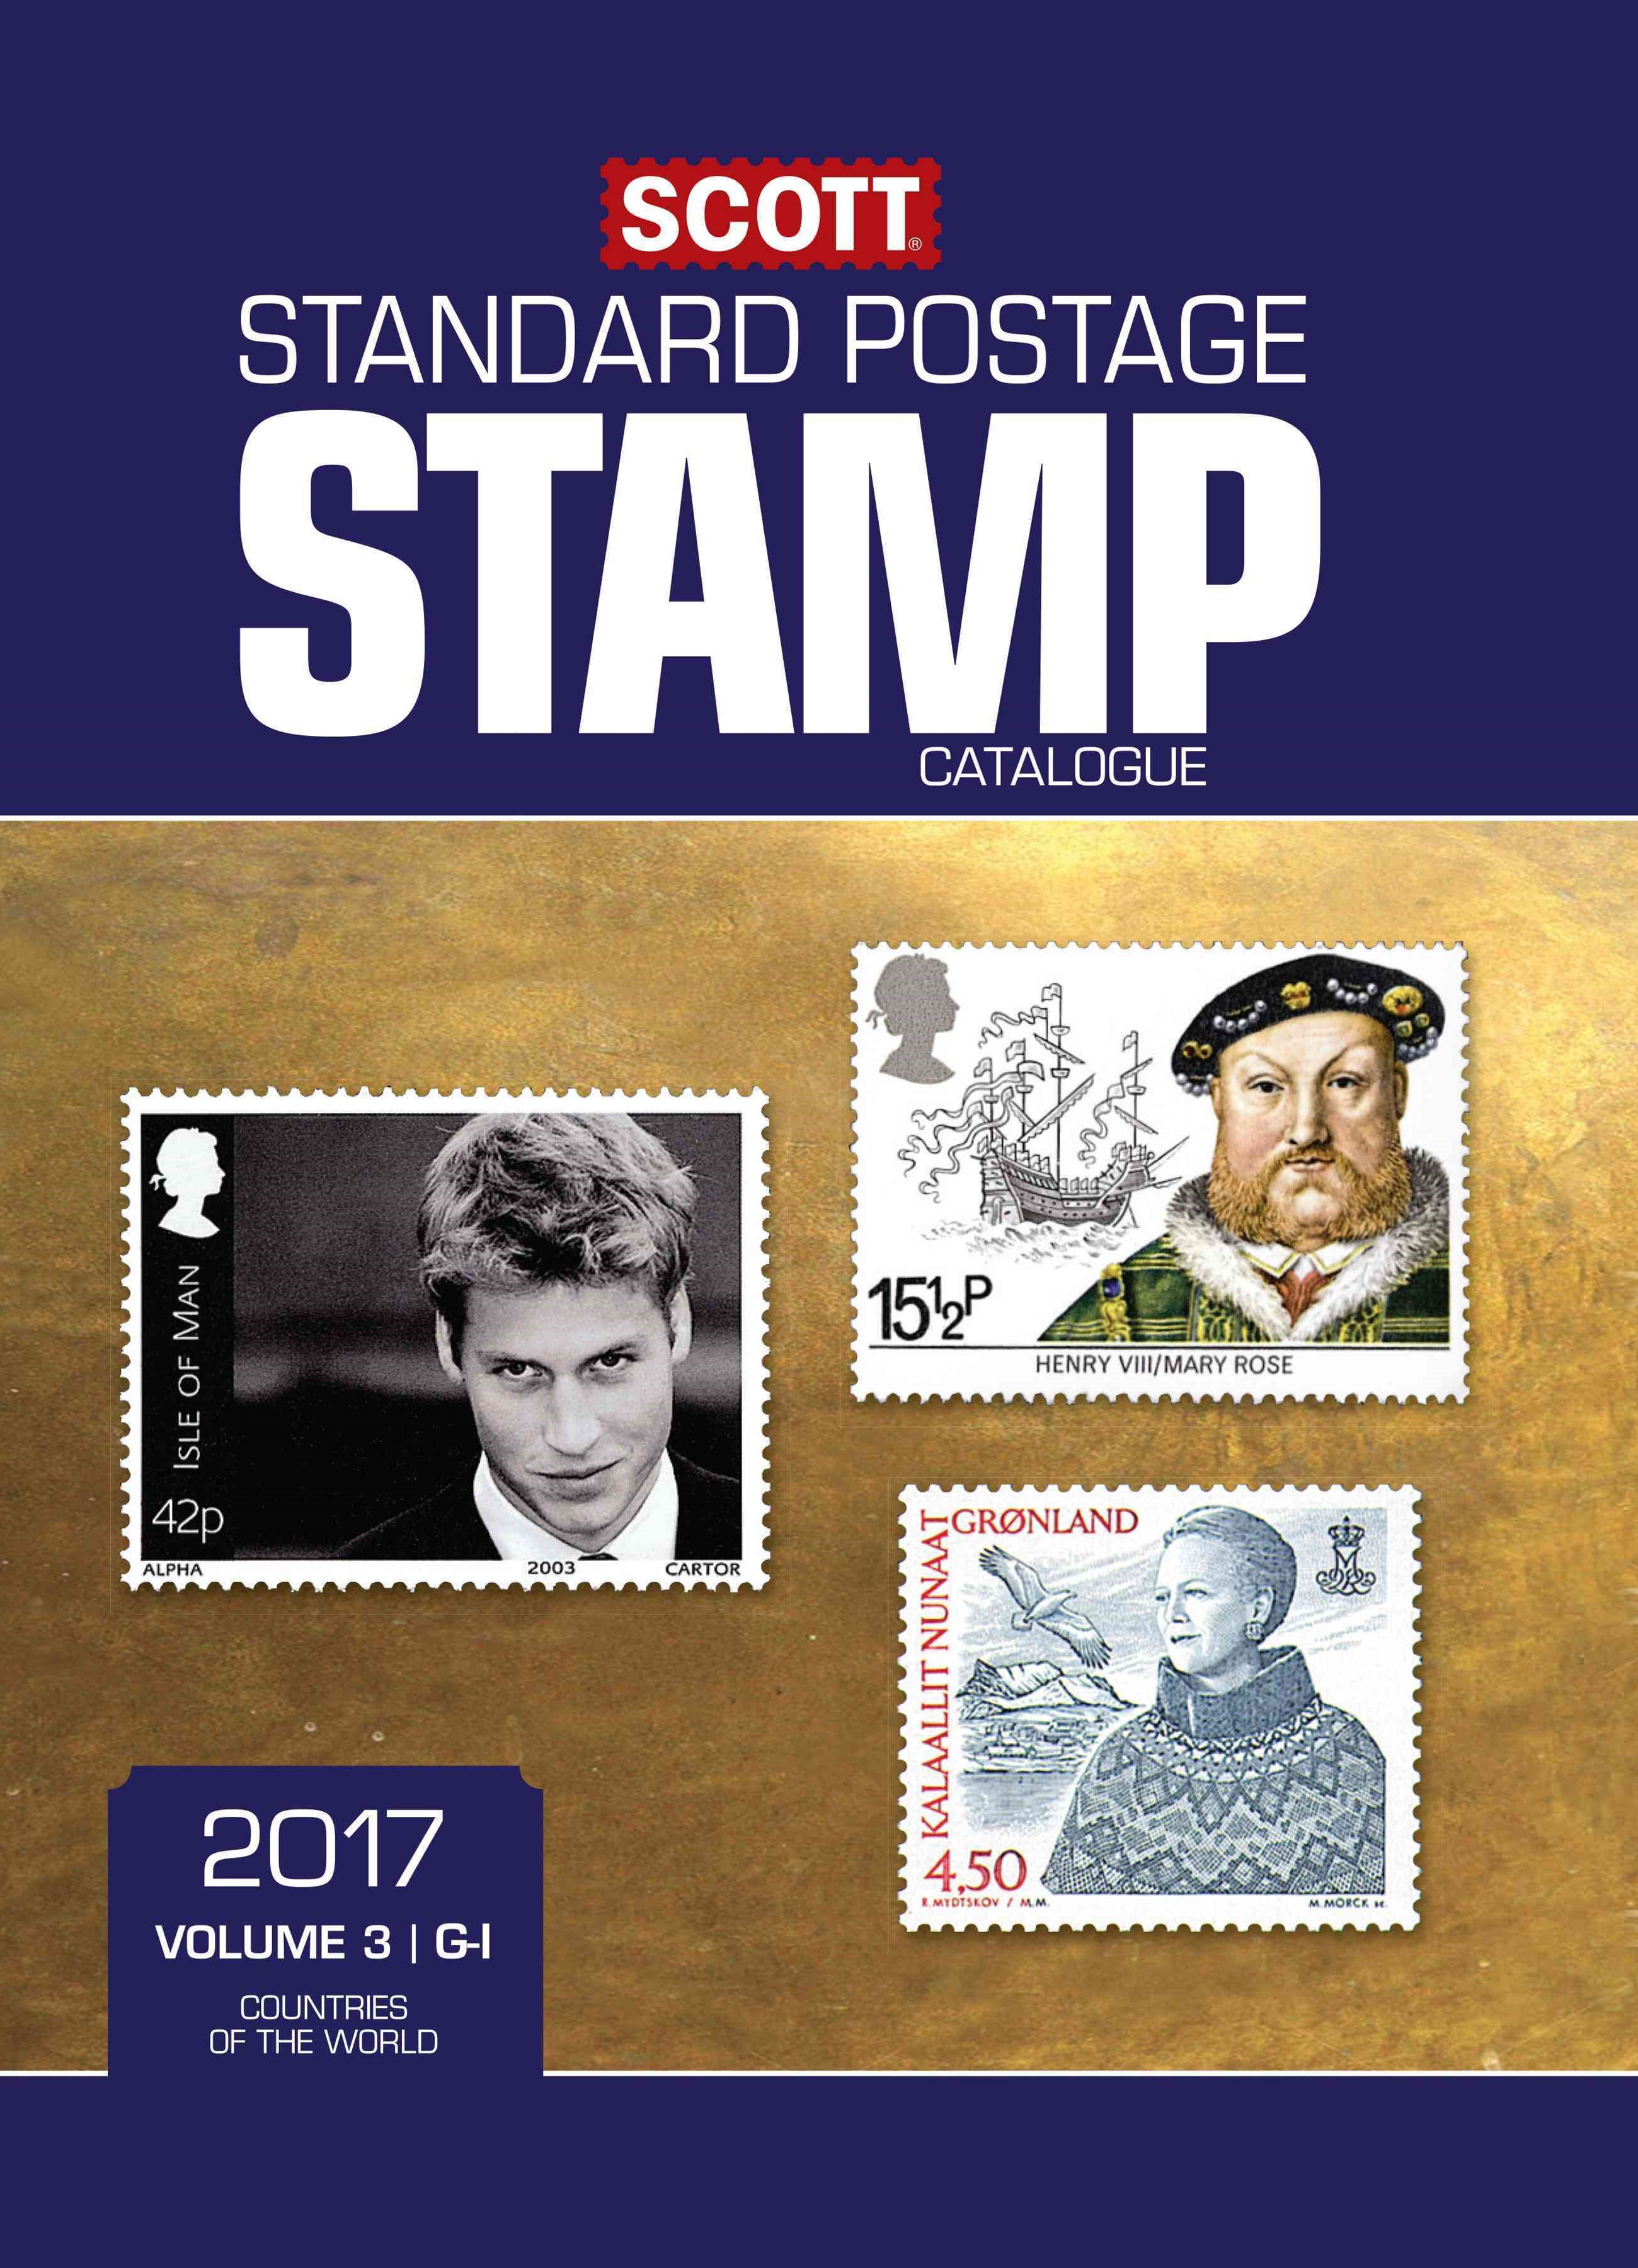 Scott 2017 Standard Postage Stamp Catalogue, Volume 3